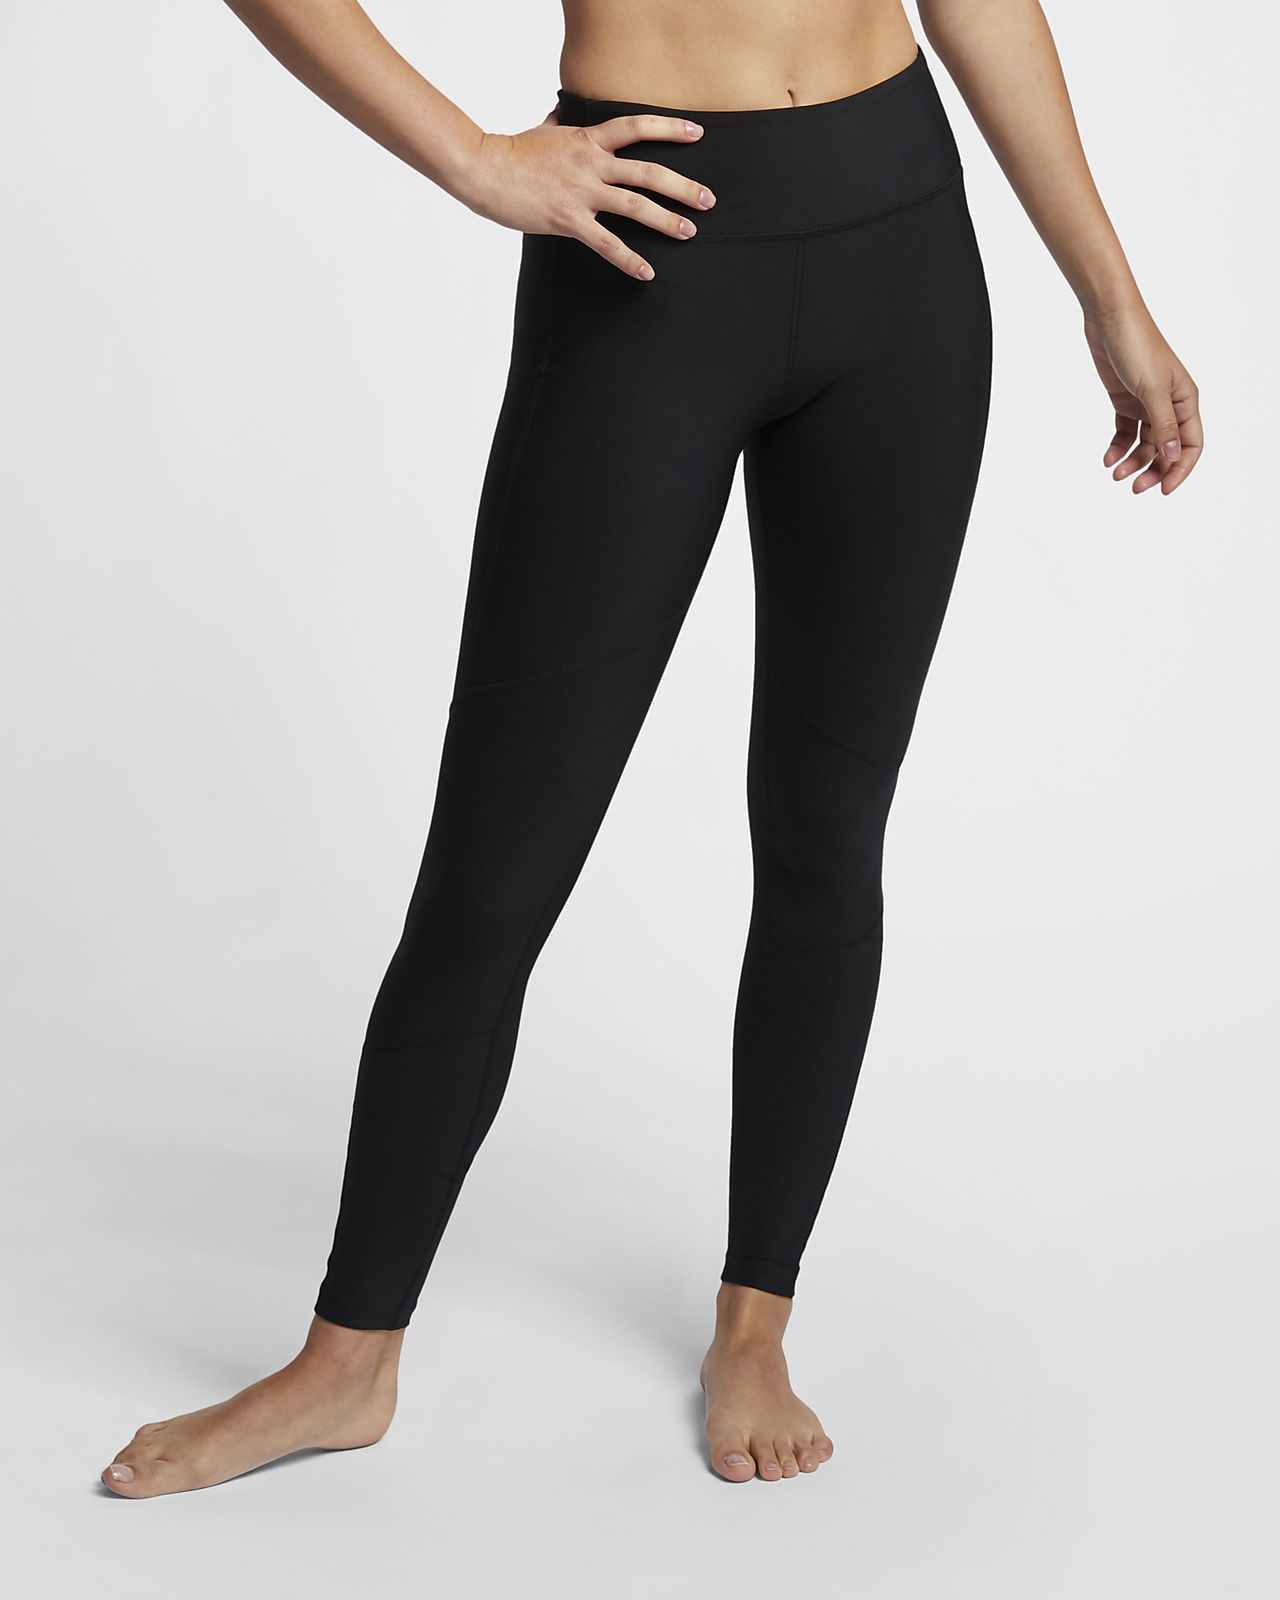 Hurley Quick Dry Street Ready-surferleggings til kvinder